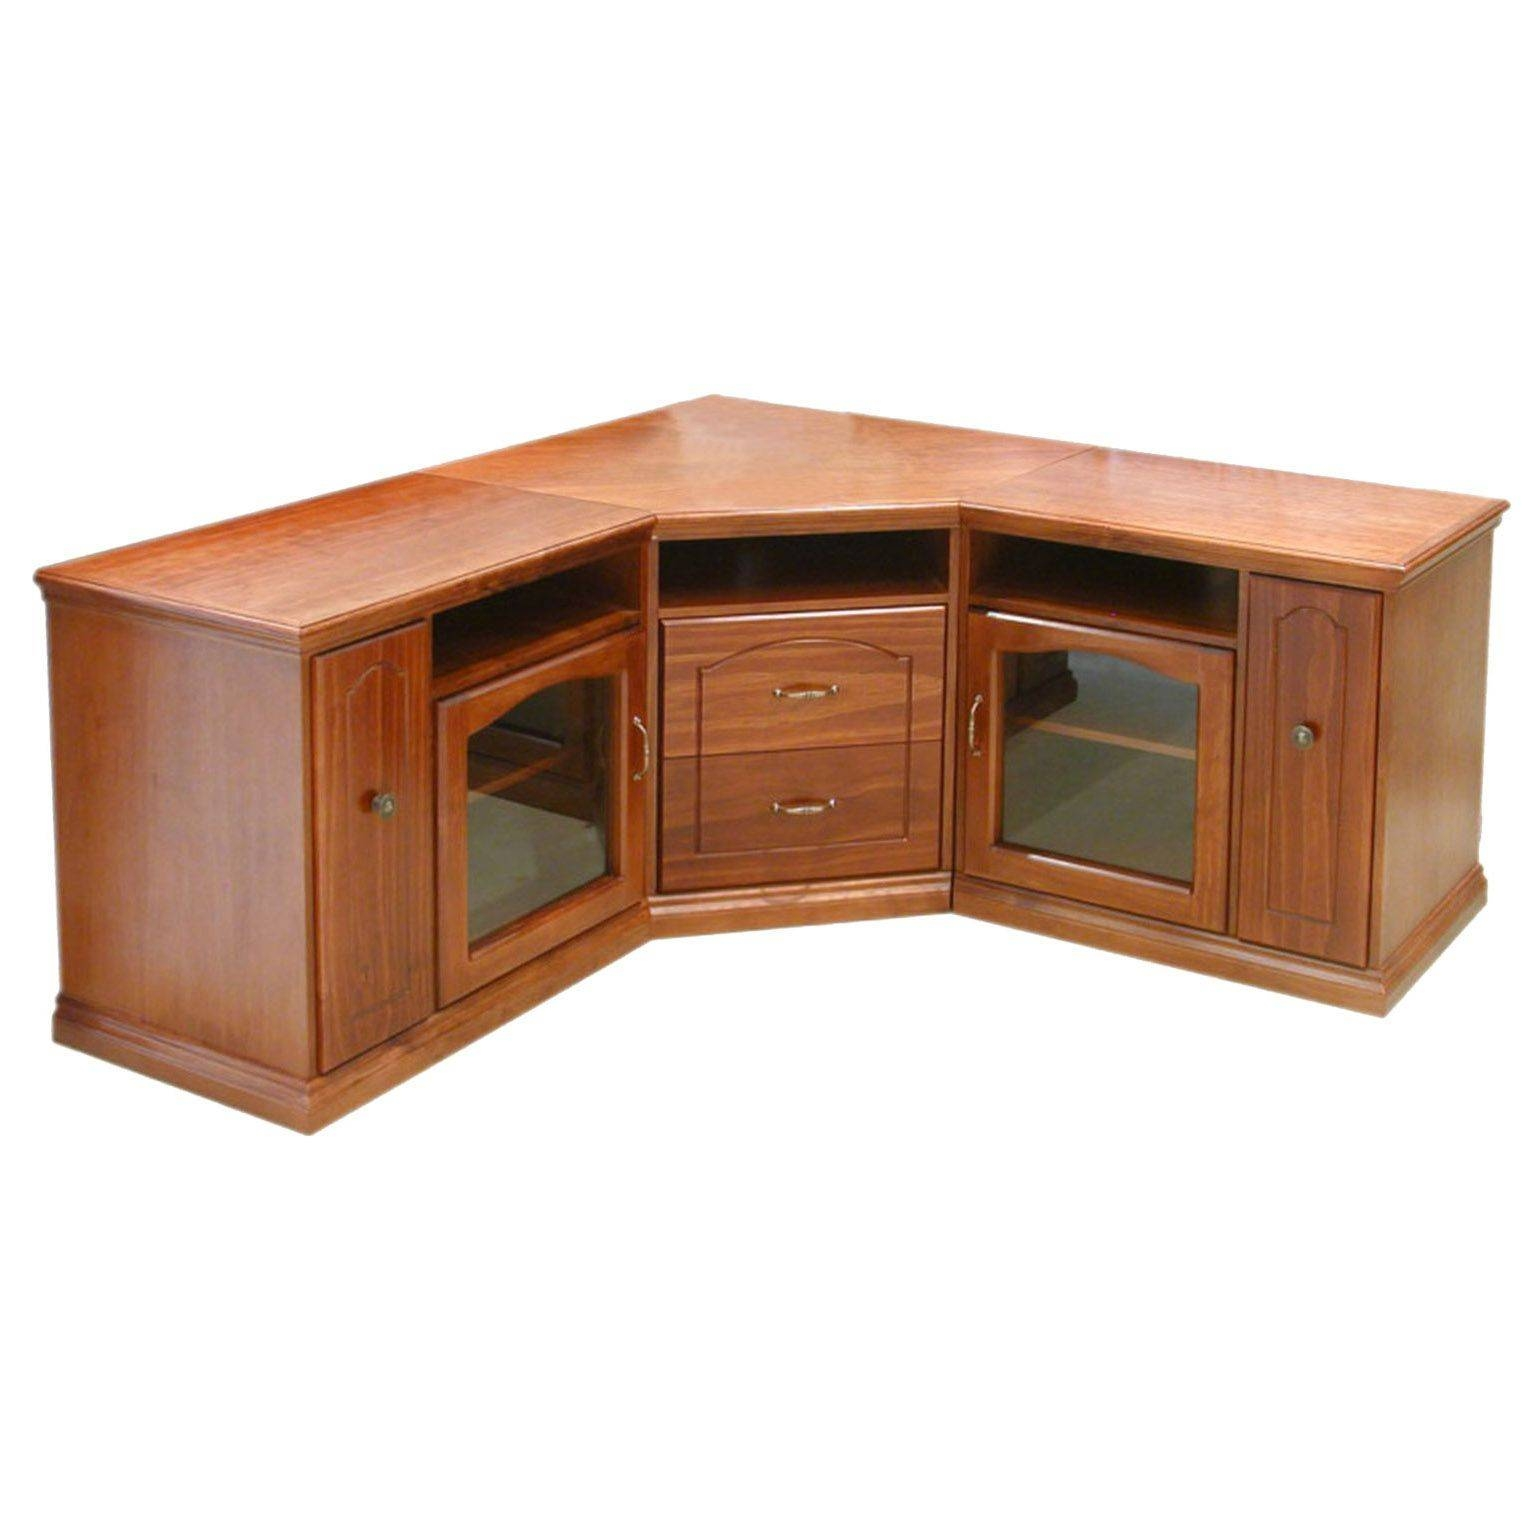 Barossa Corner Tv Unit - Wohlers pertaining to Corner Tv Units (Image 1 of 15)